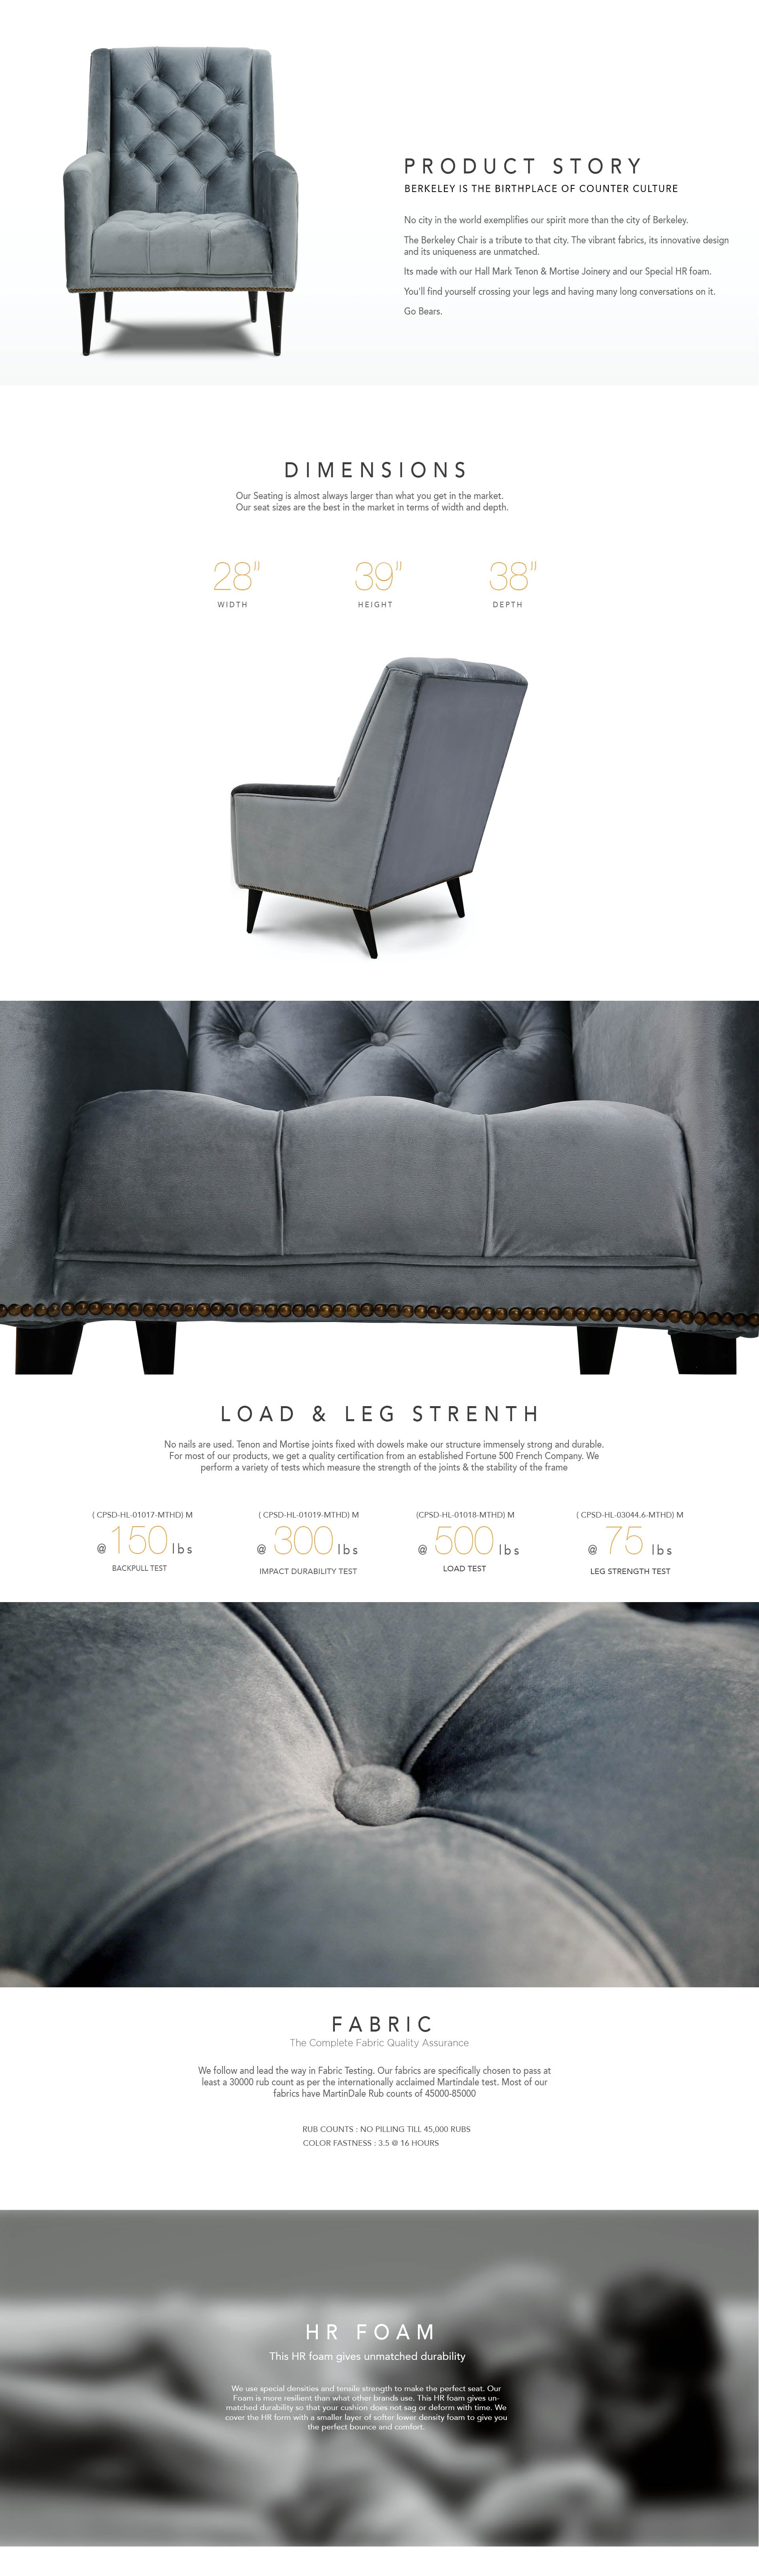 Counter Culture Retro Chair Berkeley Soft Silver Grey Catalogue Page